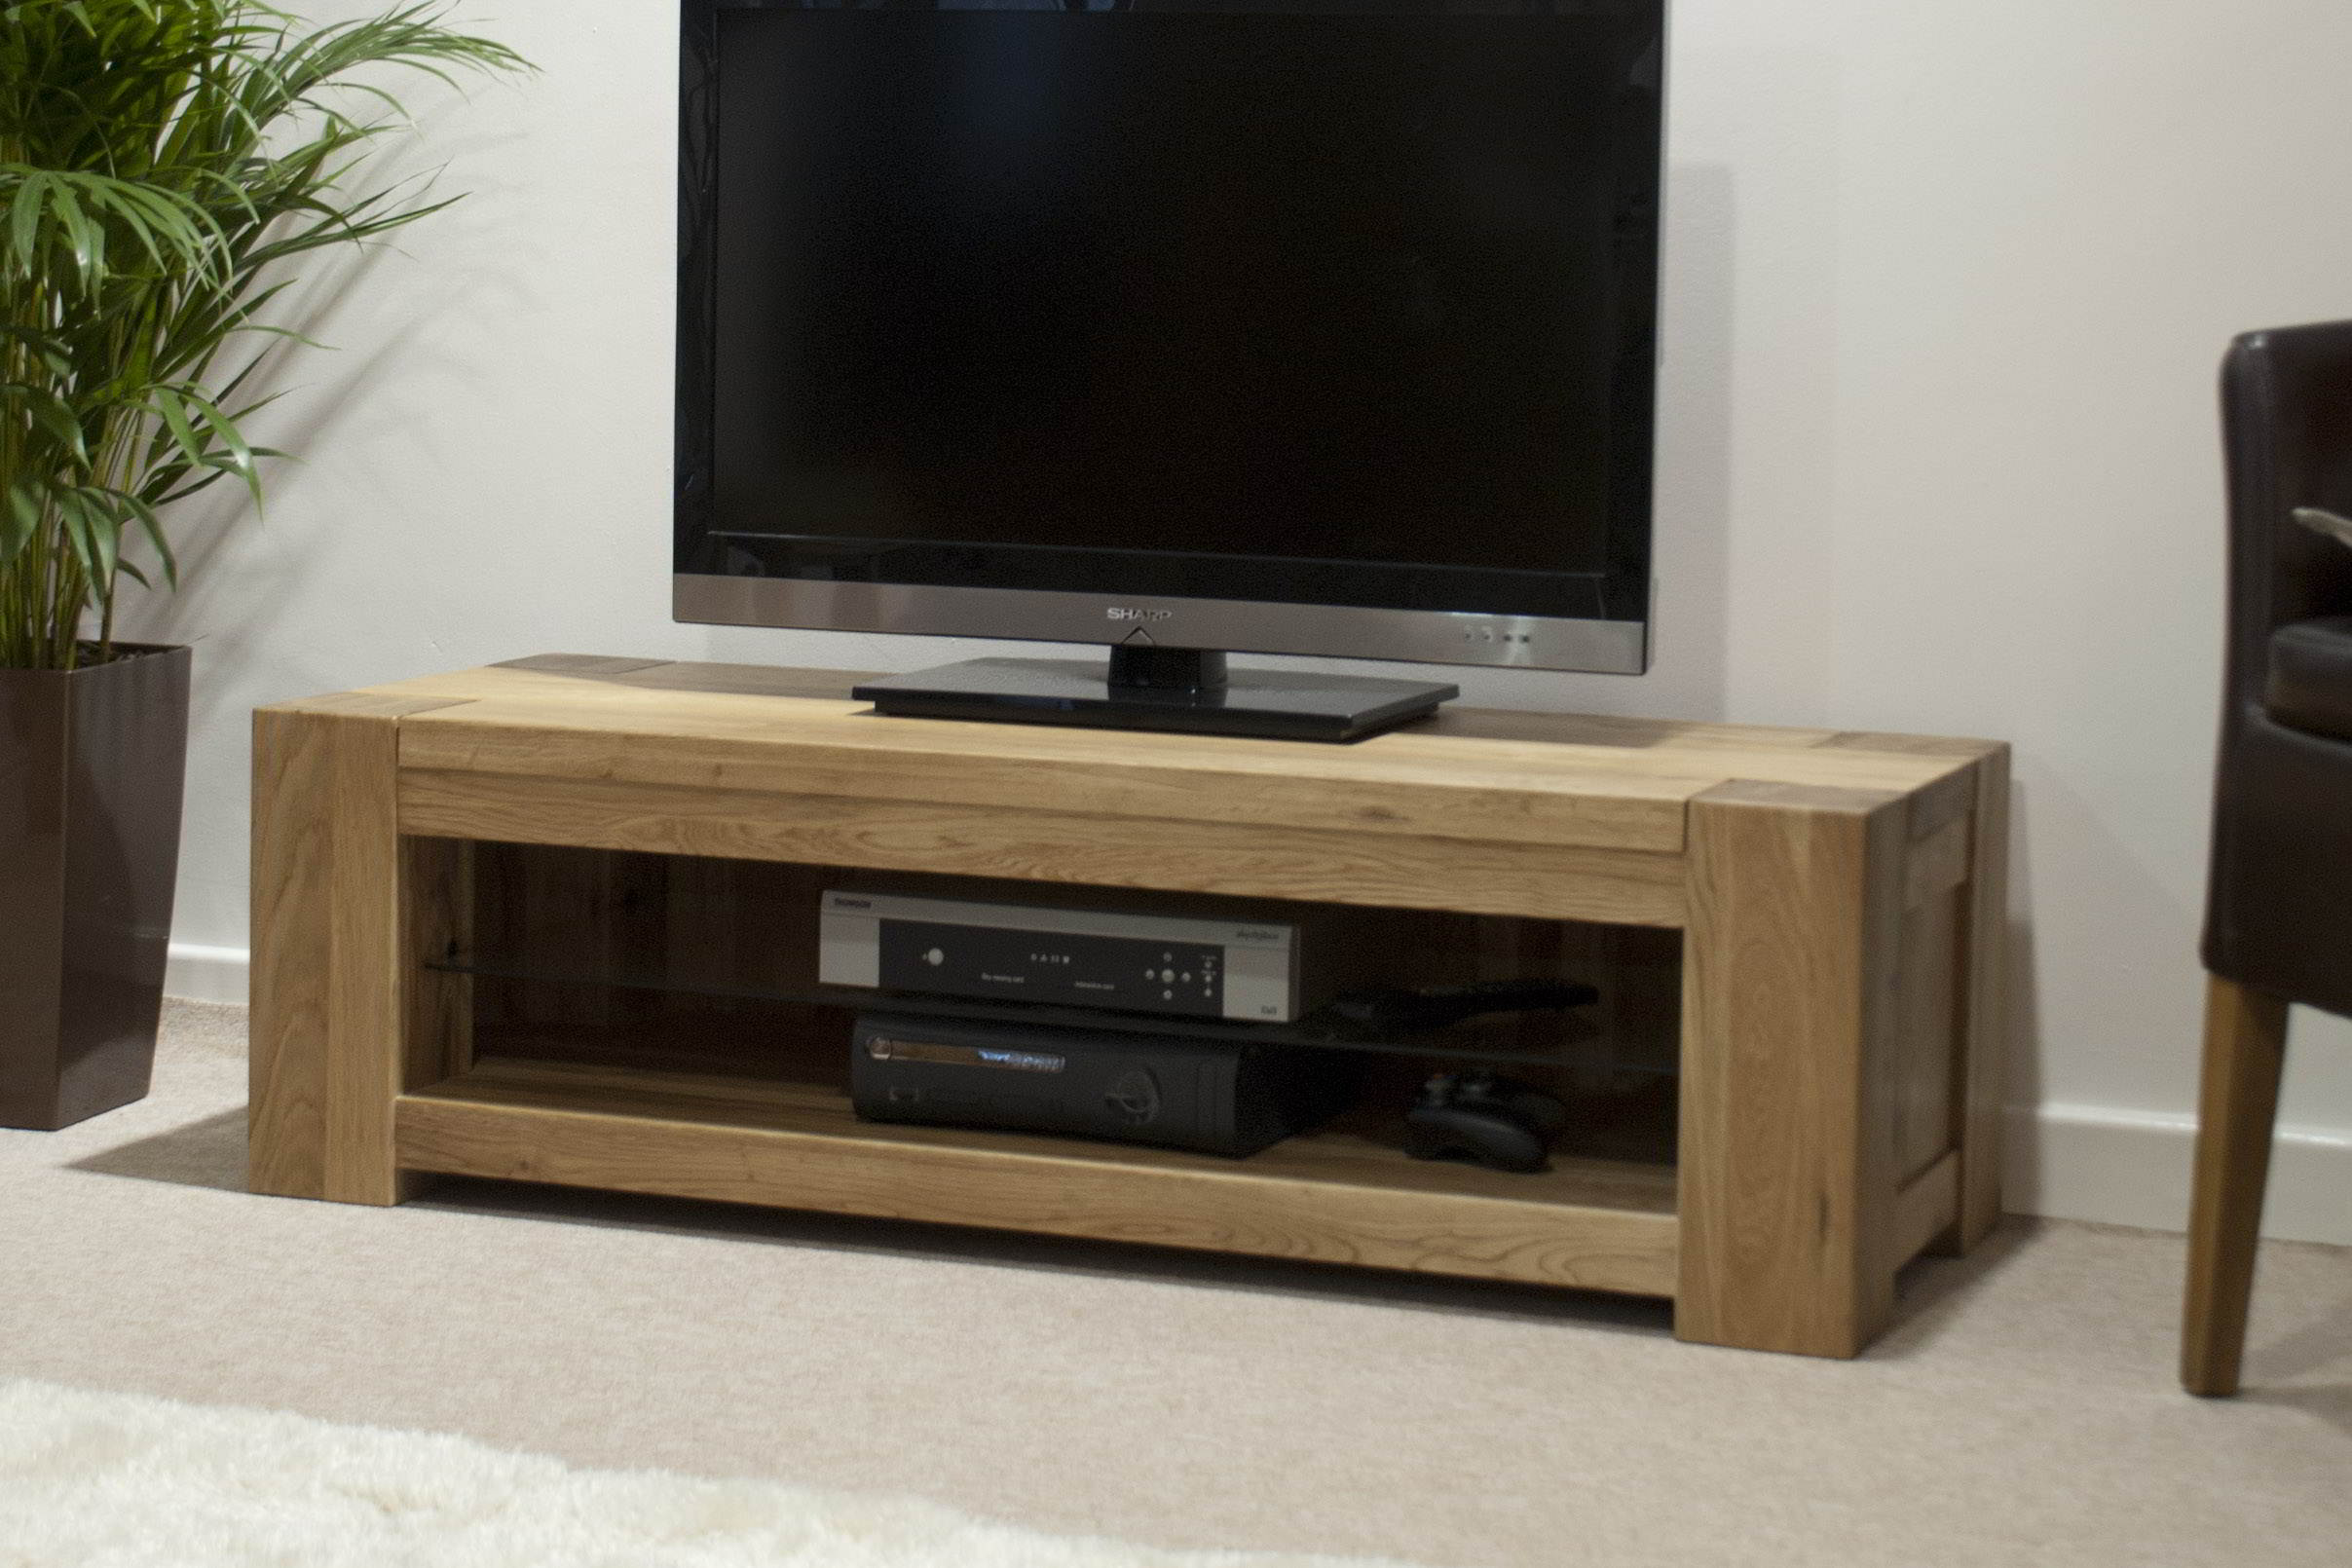 Padova solid oak furniture plasma television cabinet stand